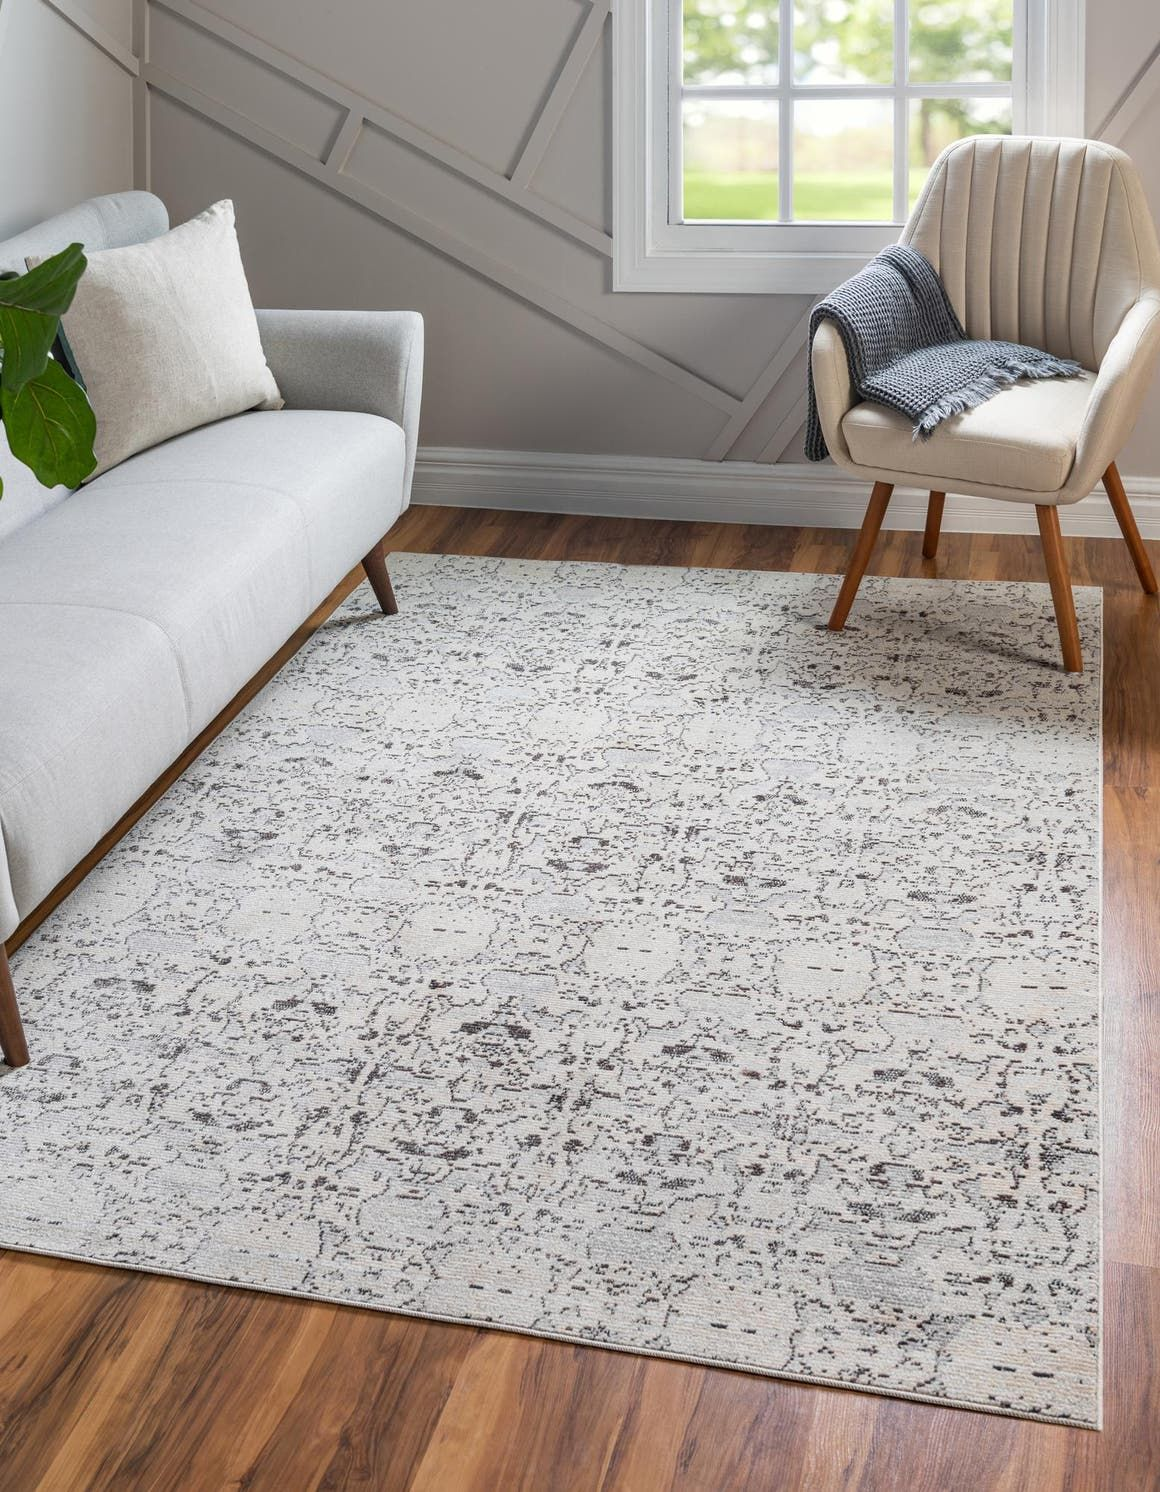 Light Gray Amulet Area Rug In 2020 With Images Rugs Light